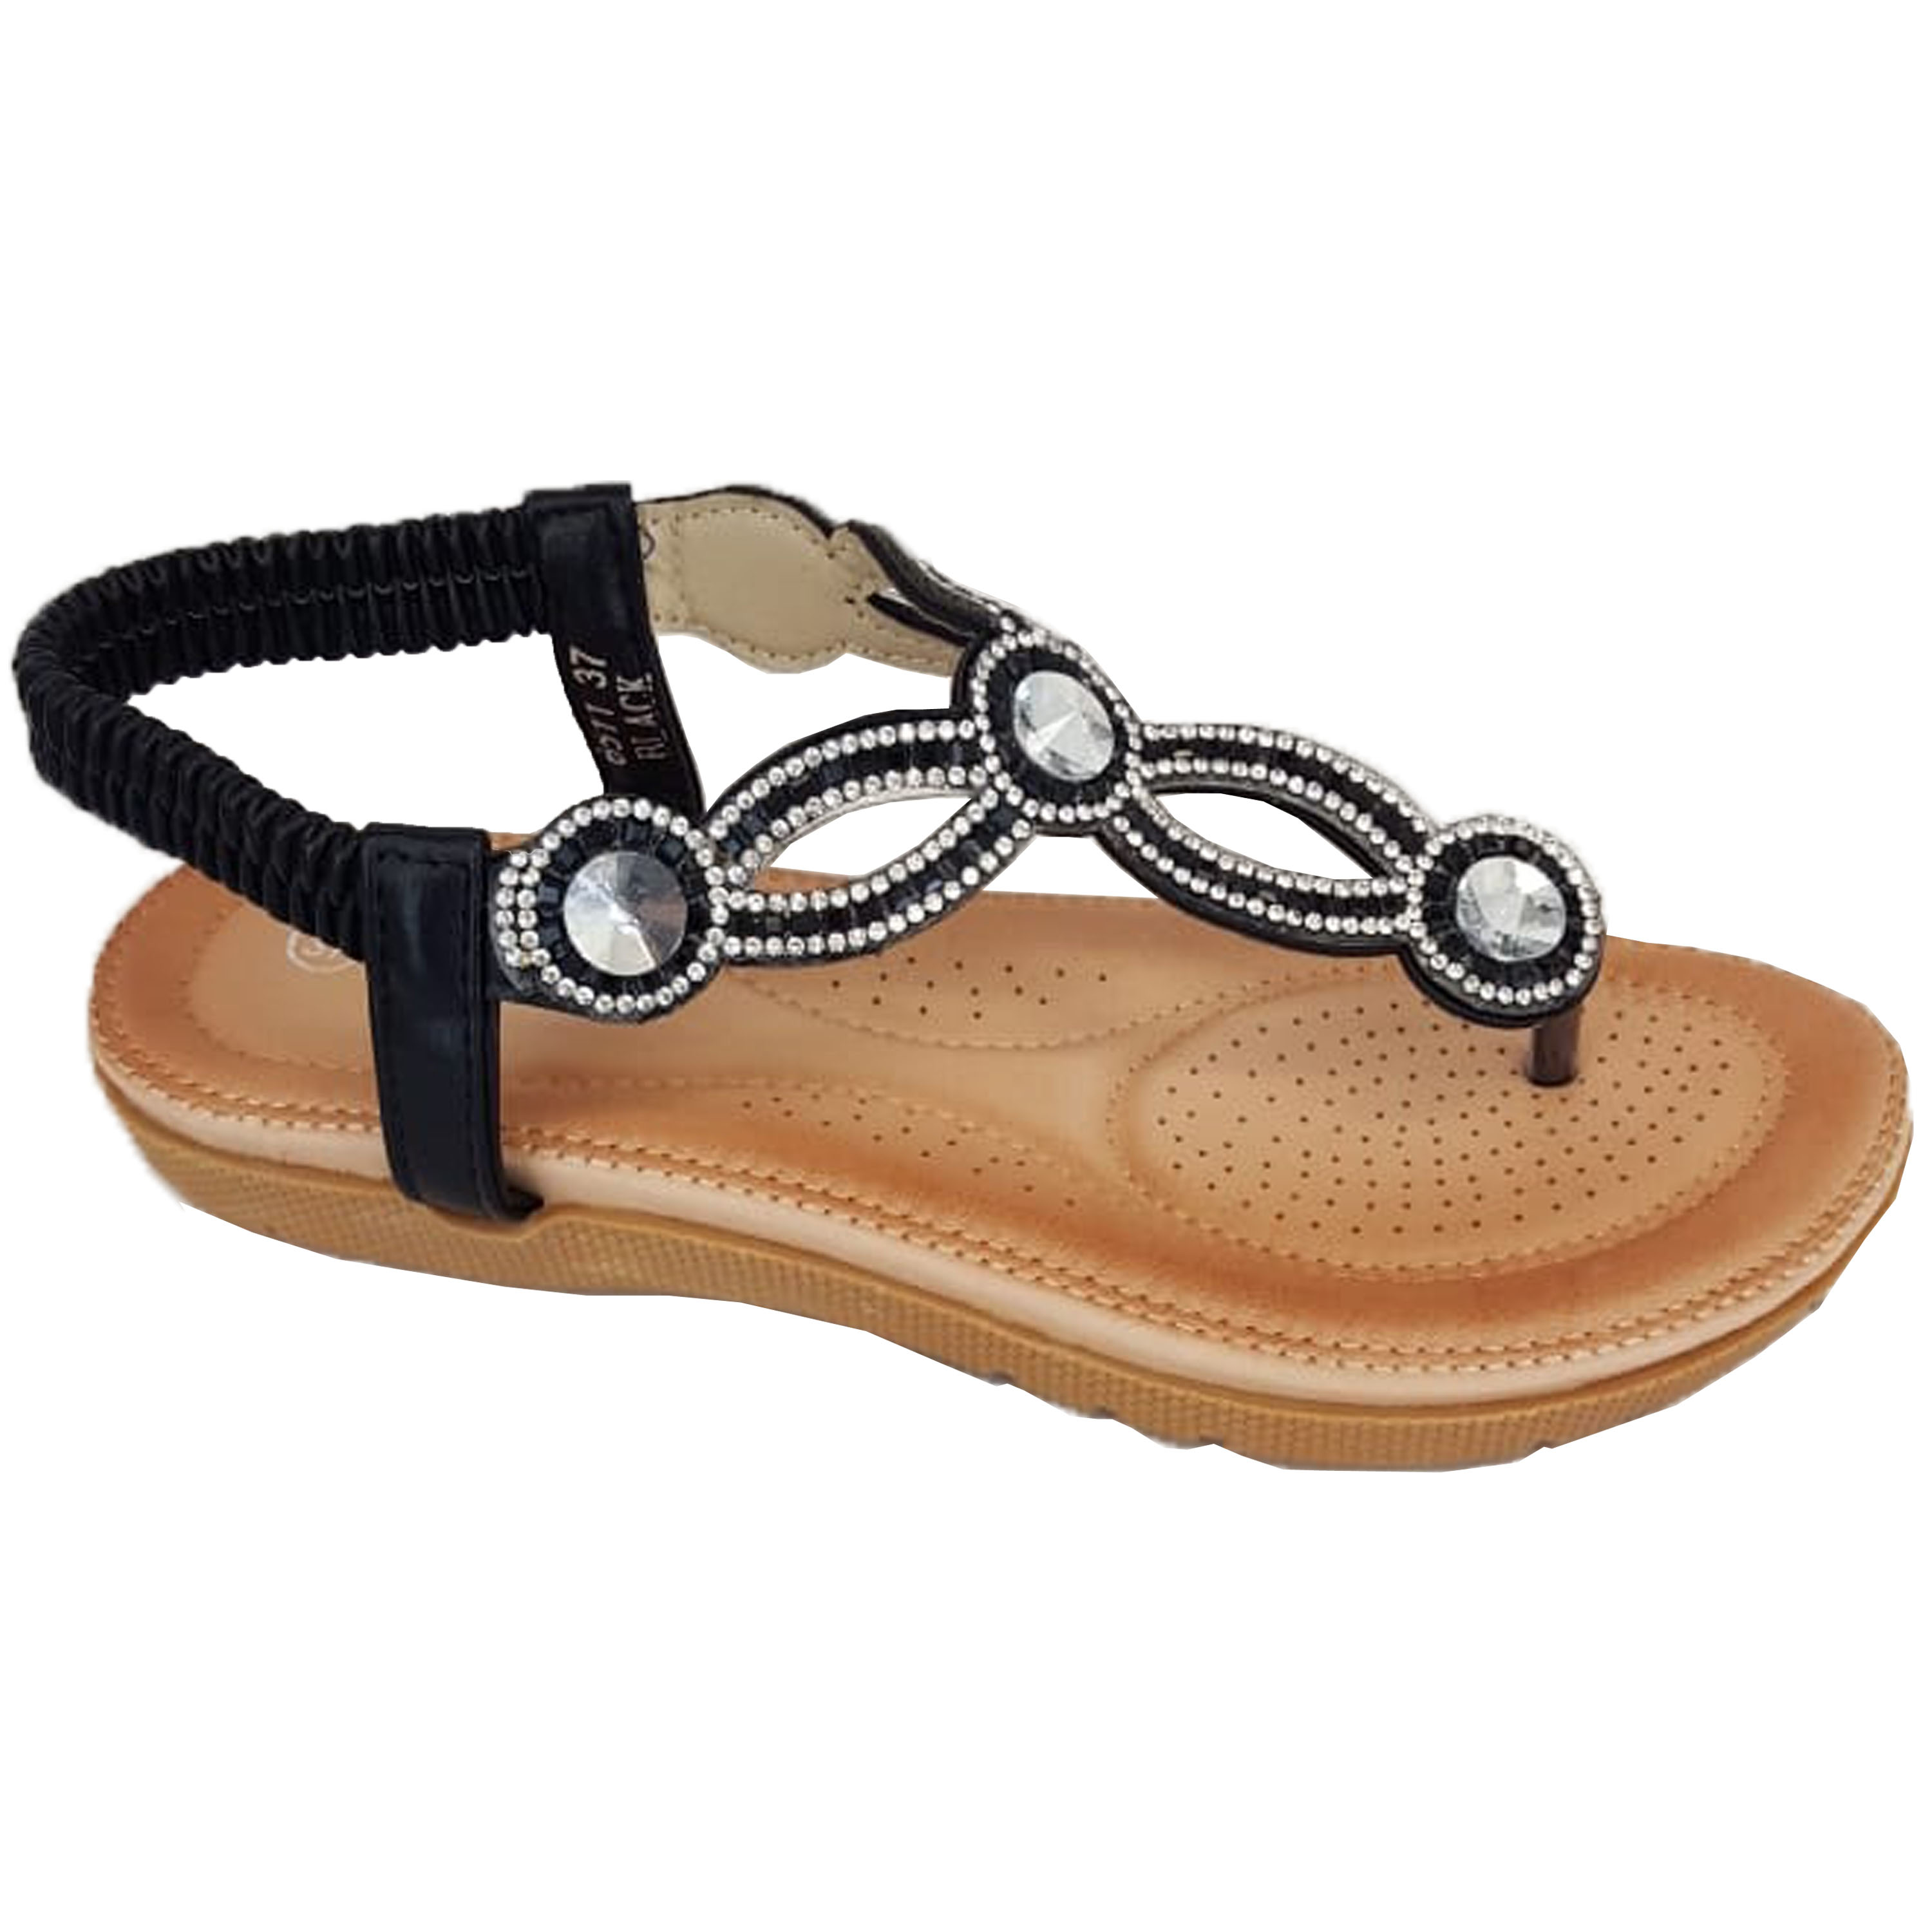 Ladies-Sandals-Womens-Diamante-Sling-Back-Open-Toe-Post-Shoes-Fashion-Summer-New thumbnail 2